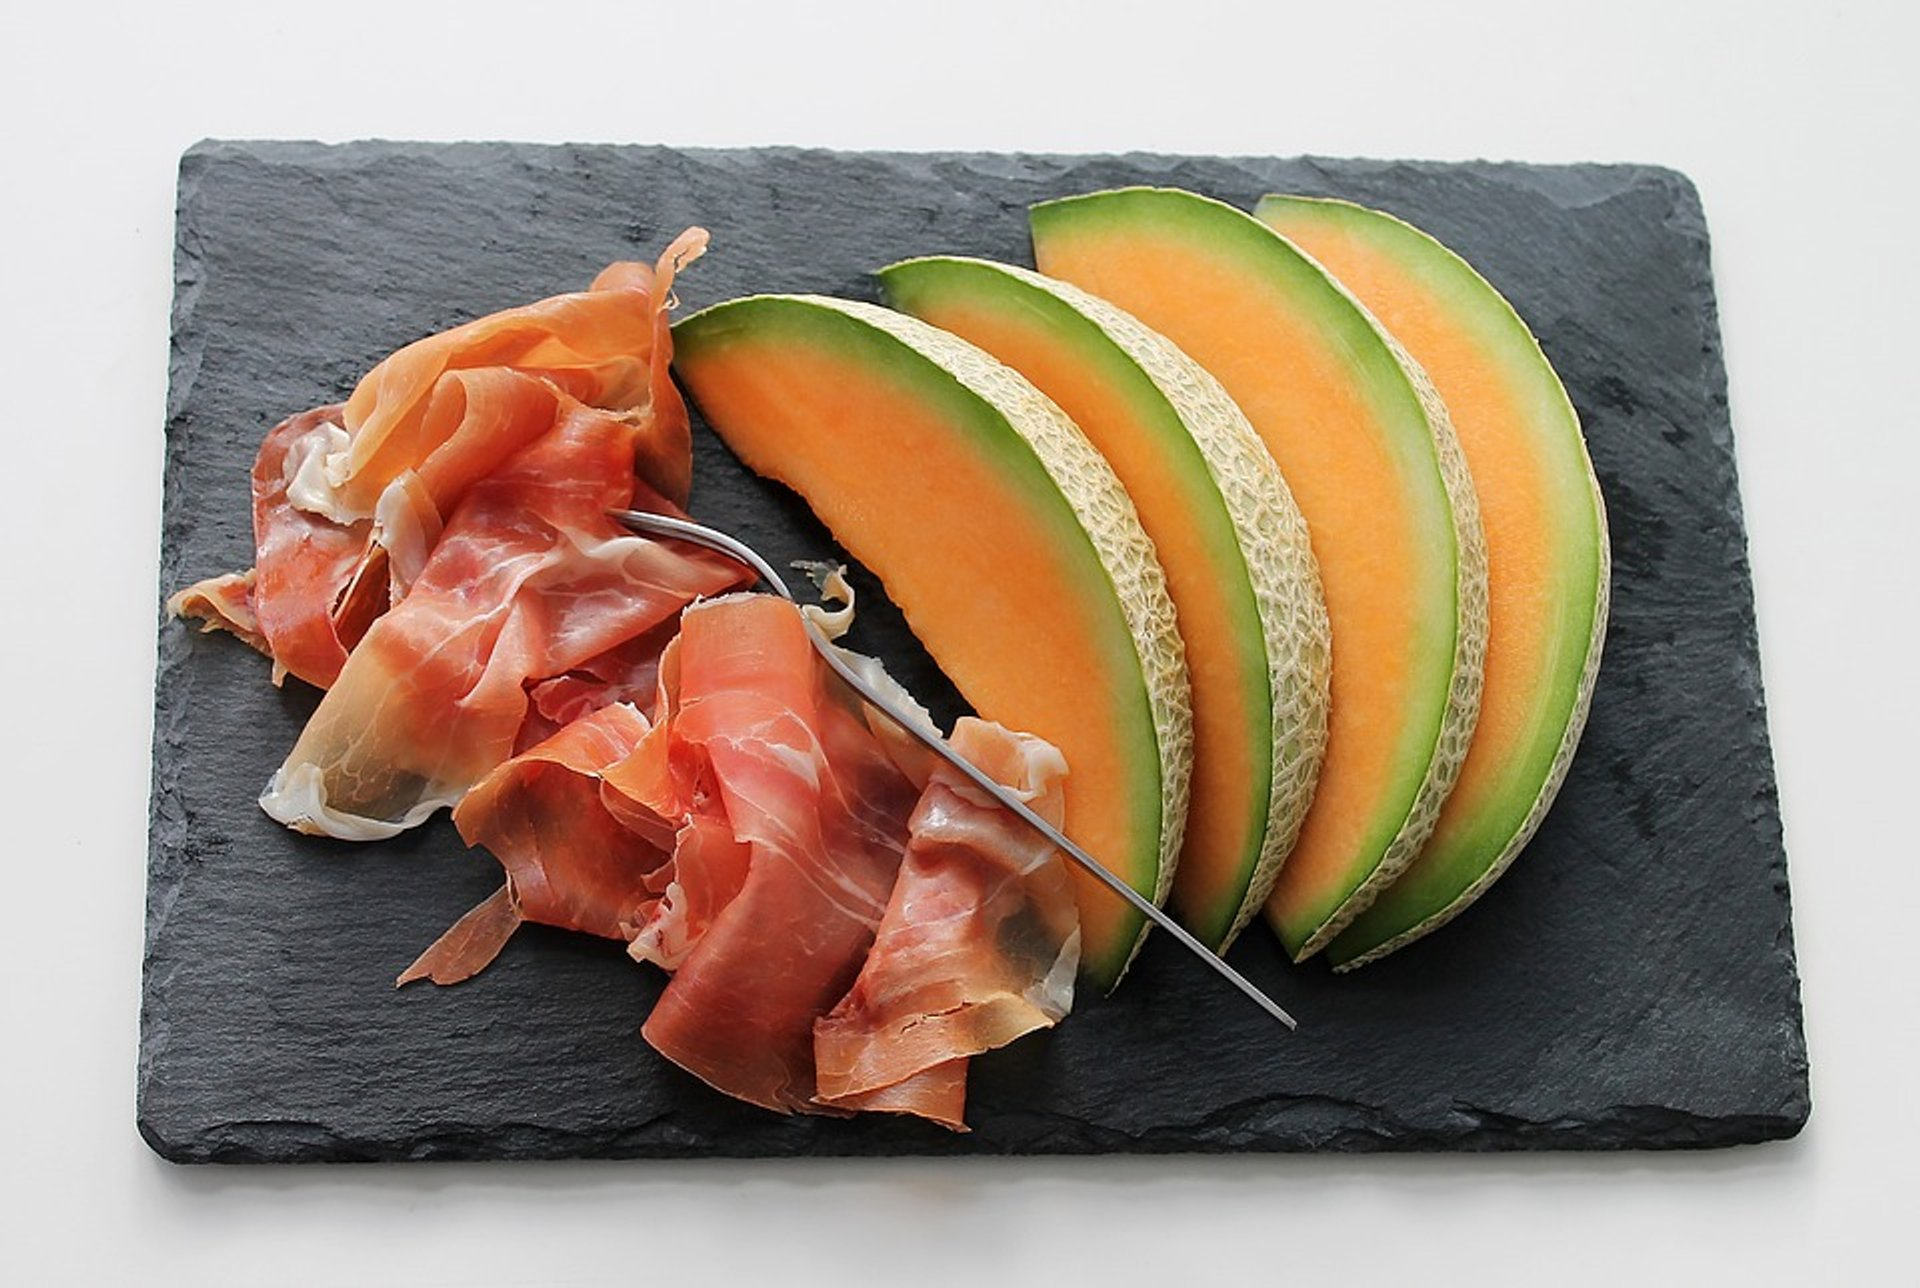 Spanish Ham (Jamón) with Melon in Spain 2020 - Best Time